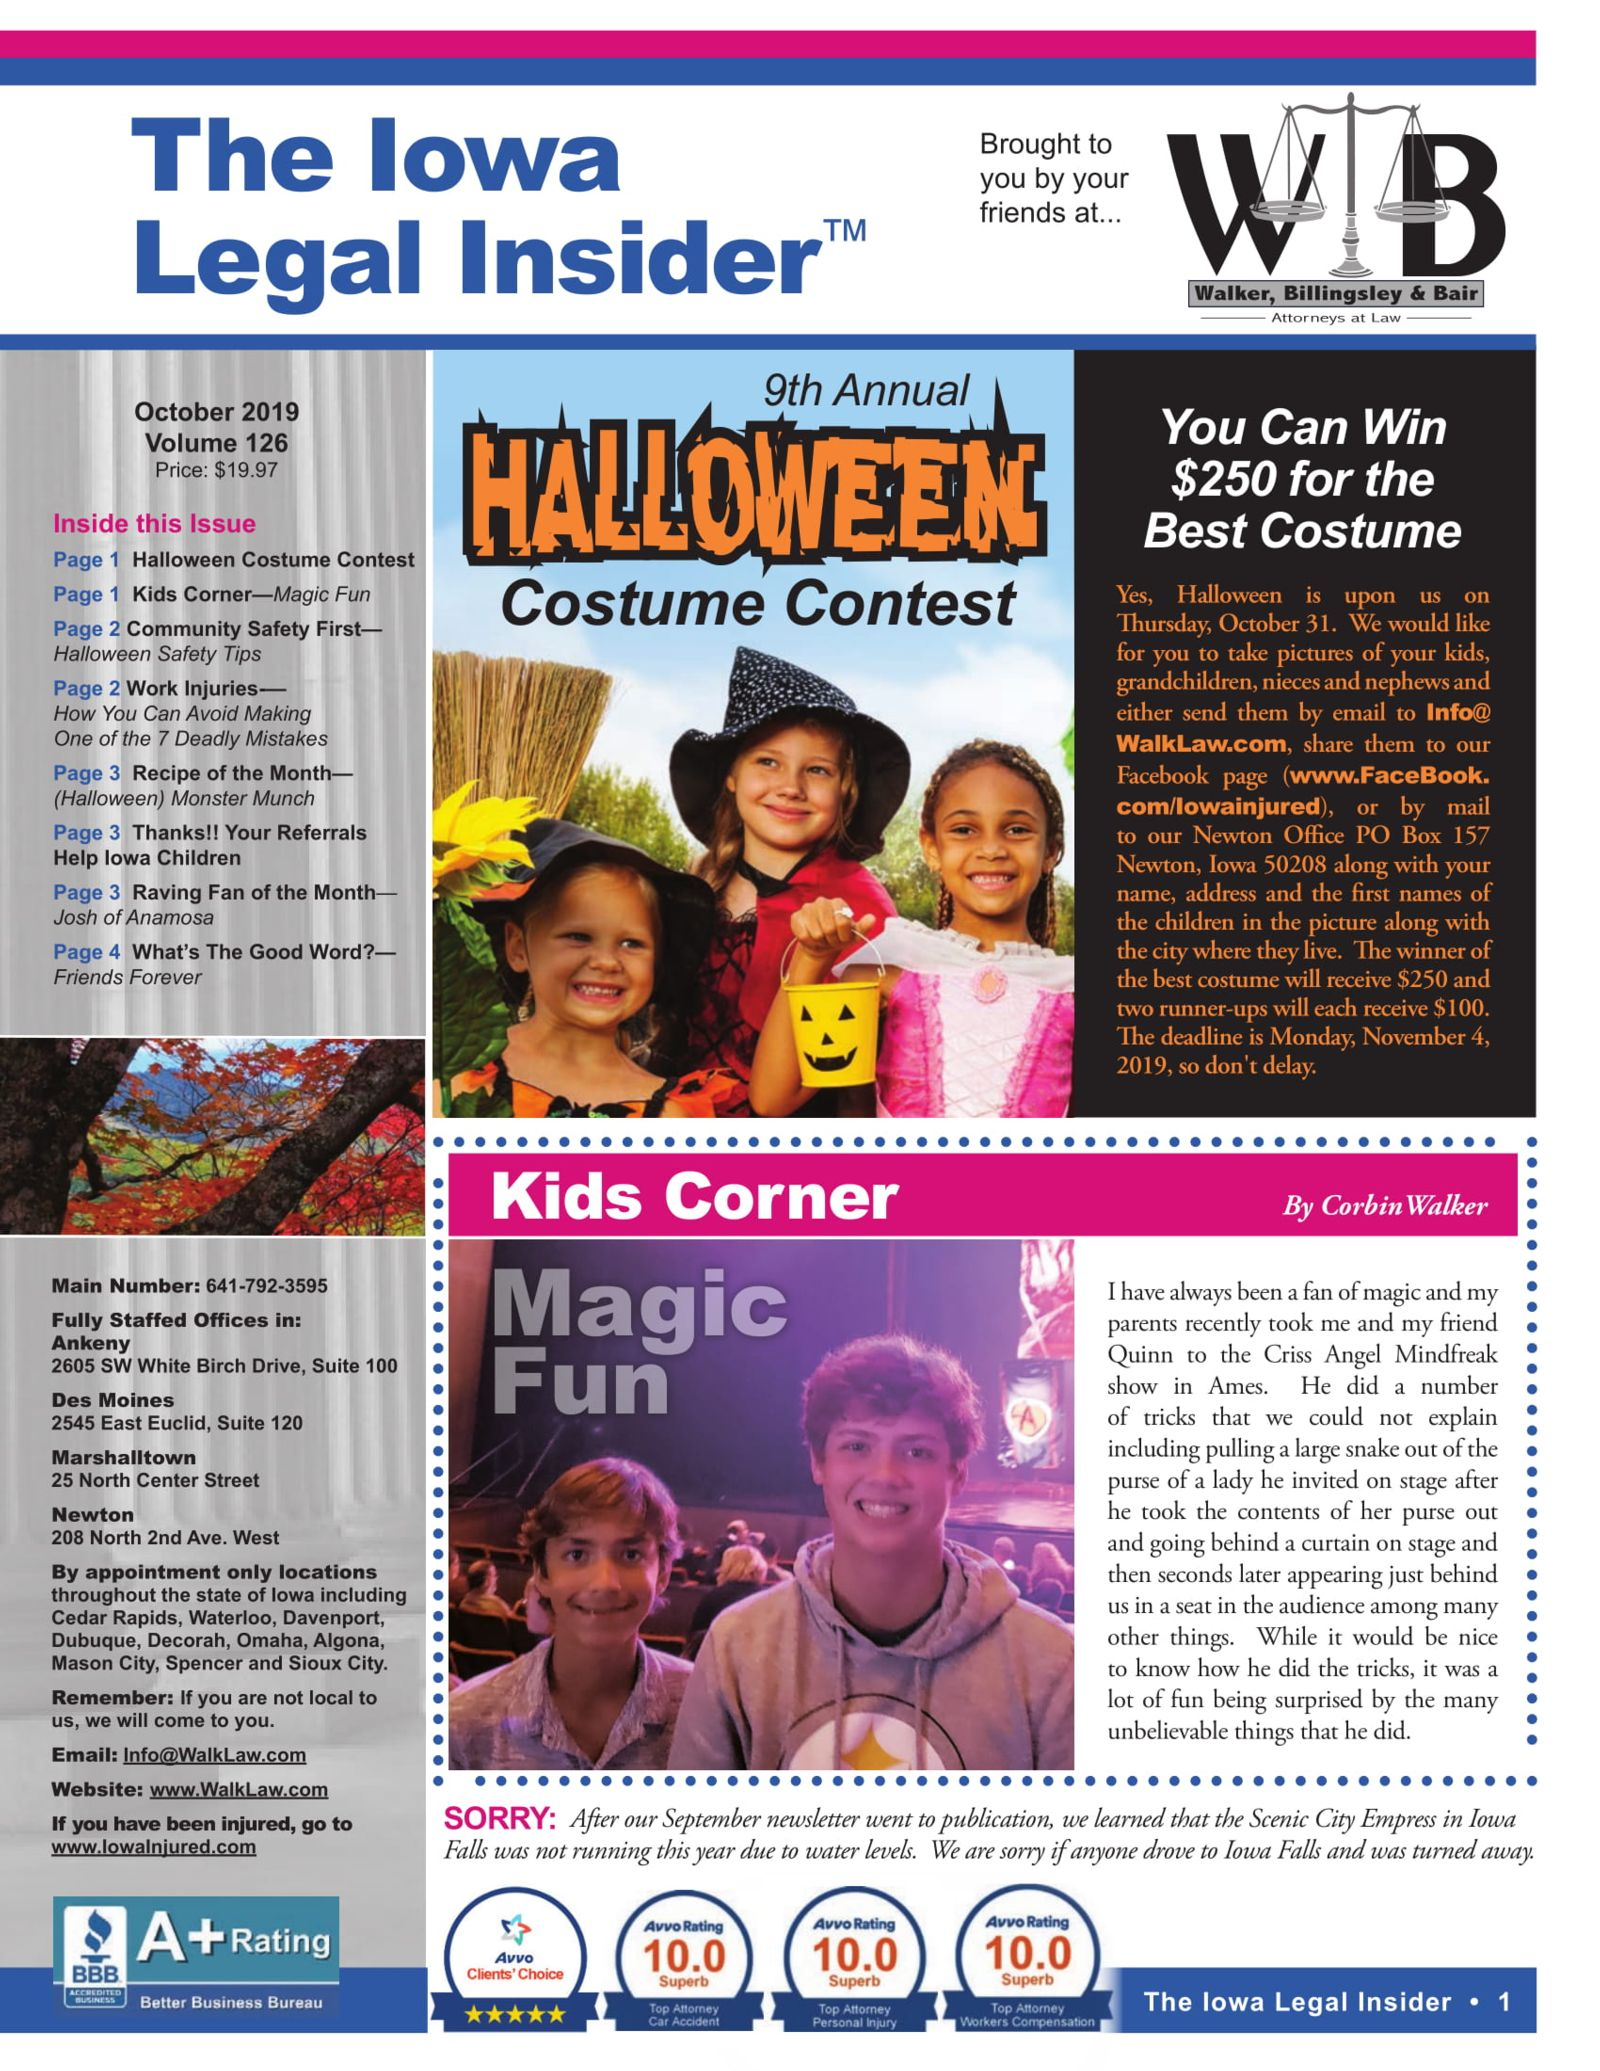 The Iowa Legal Insider Halloween Costume Contest